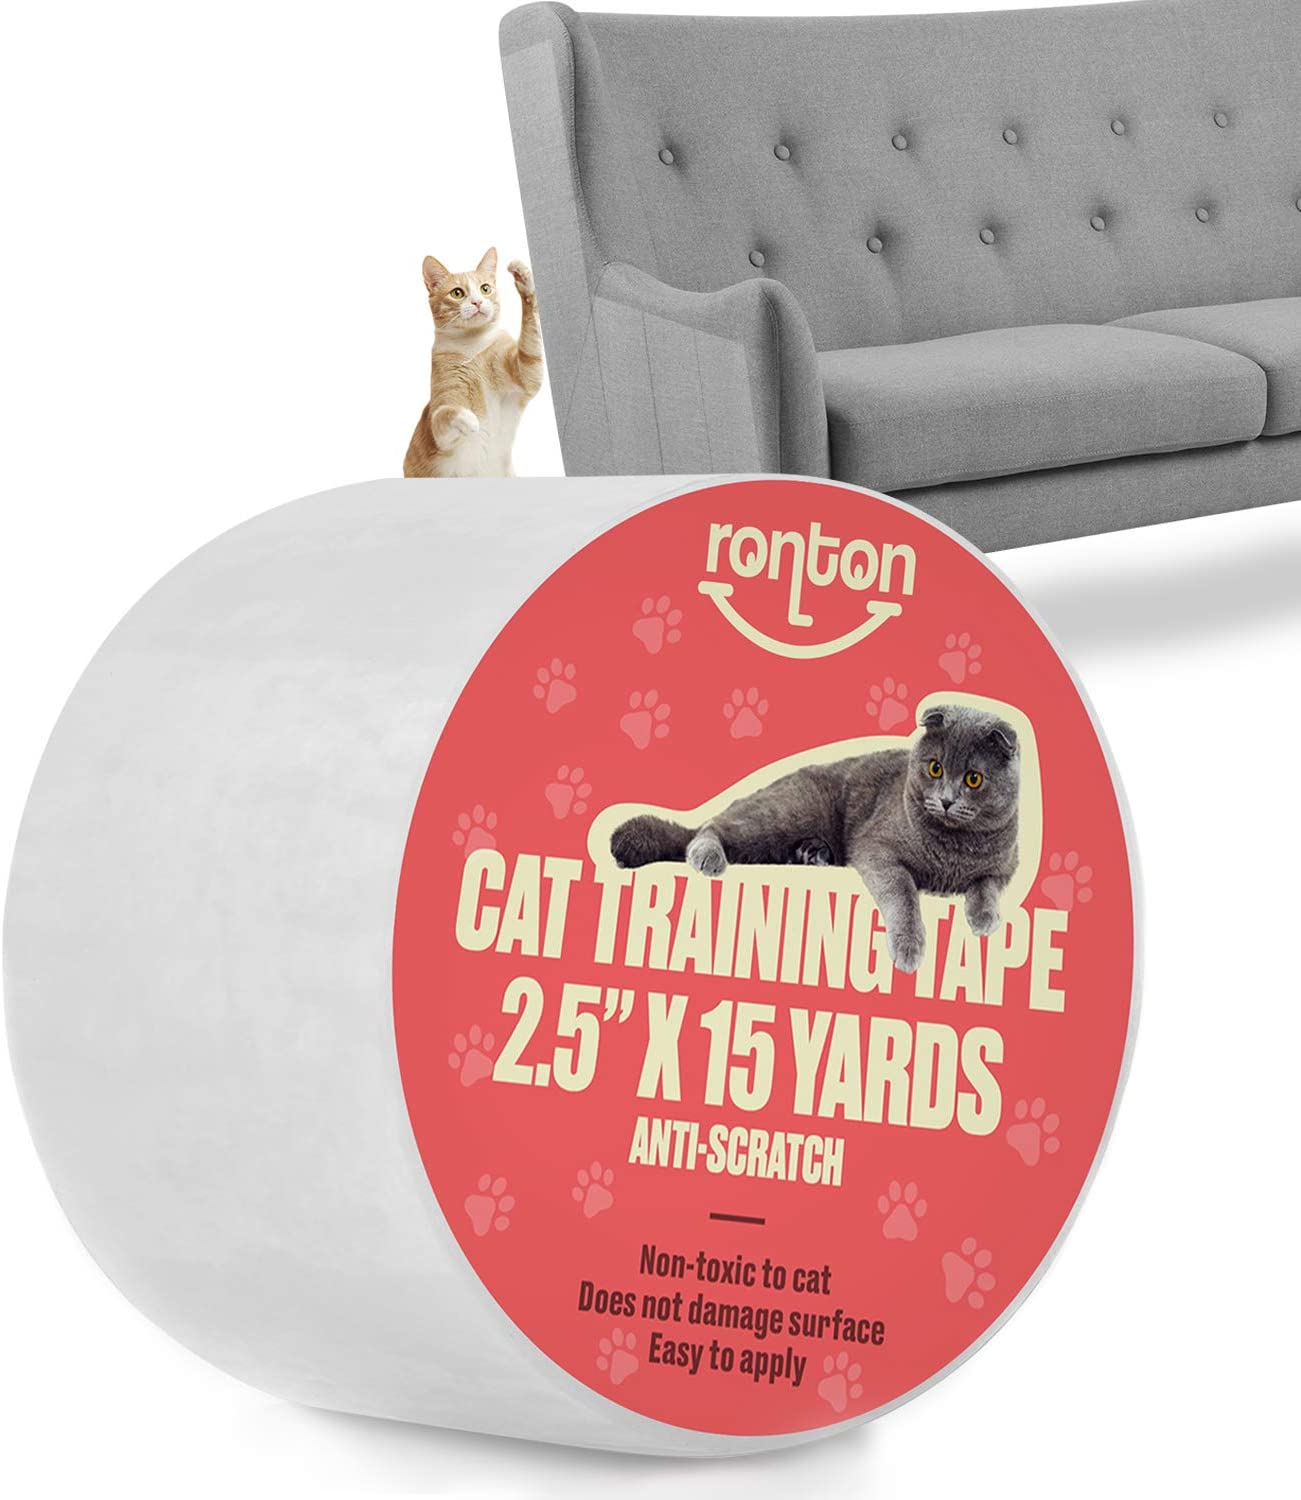 Ronton Cat Scratch Deterrent Tape - Anti Scratch Tape for Cats | 100% Transparent Clear Double Sided Training Tape | Pet & Kid Safe | Furniture, Couch, Door Protector